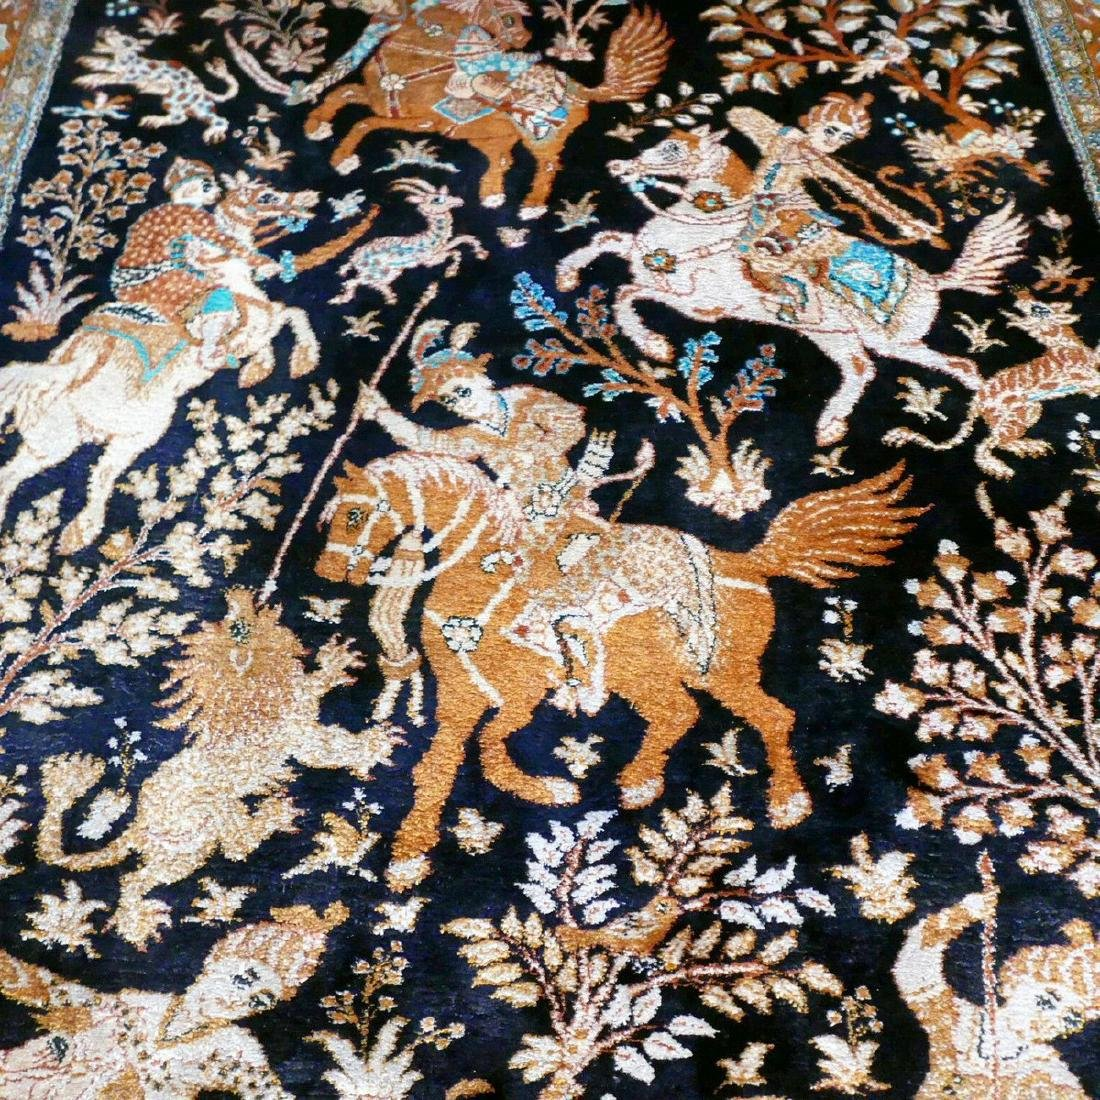 Hand Knotted Silk Hunting Scene Qum Rug 6.3x4.1 - 5